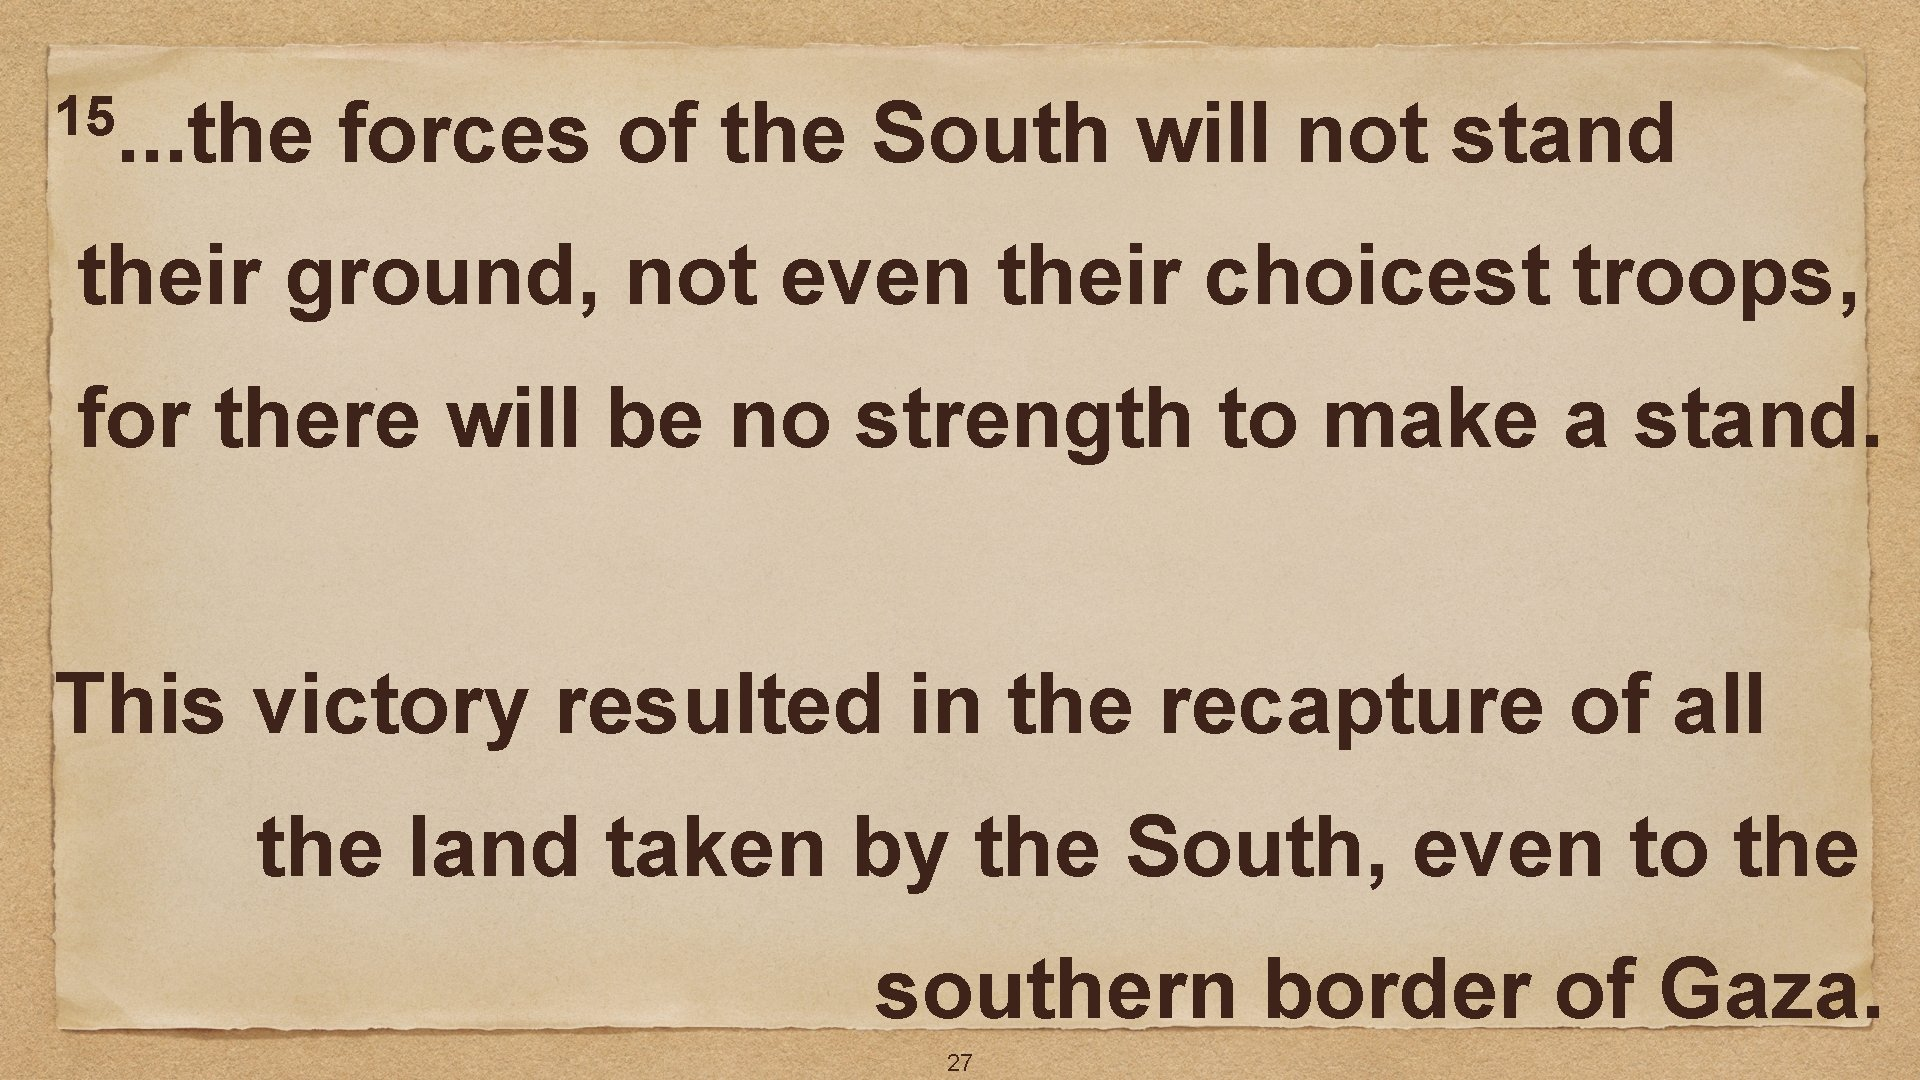 15. . . the forces of the South will not stand their ground, not